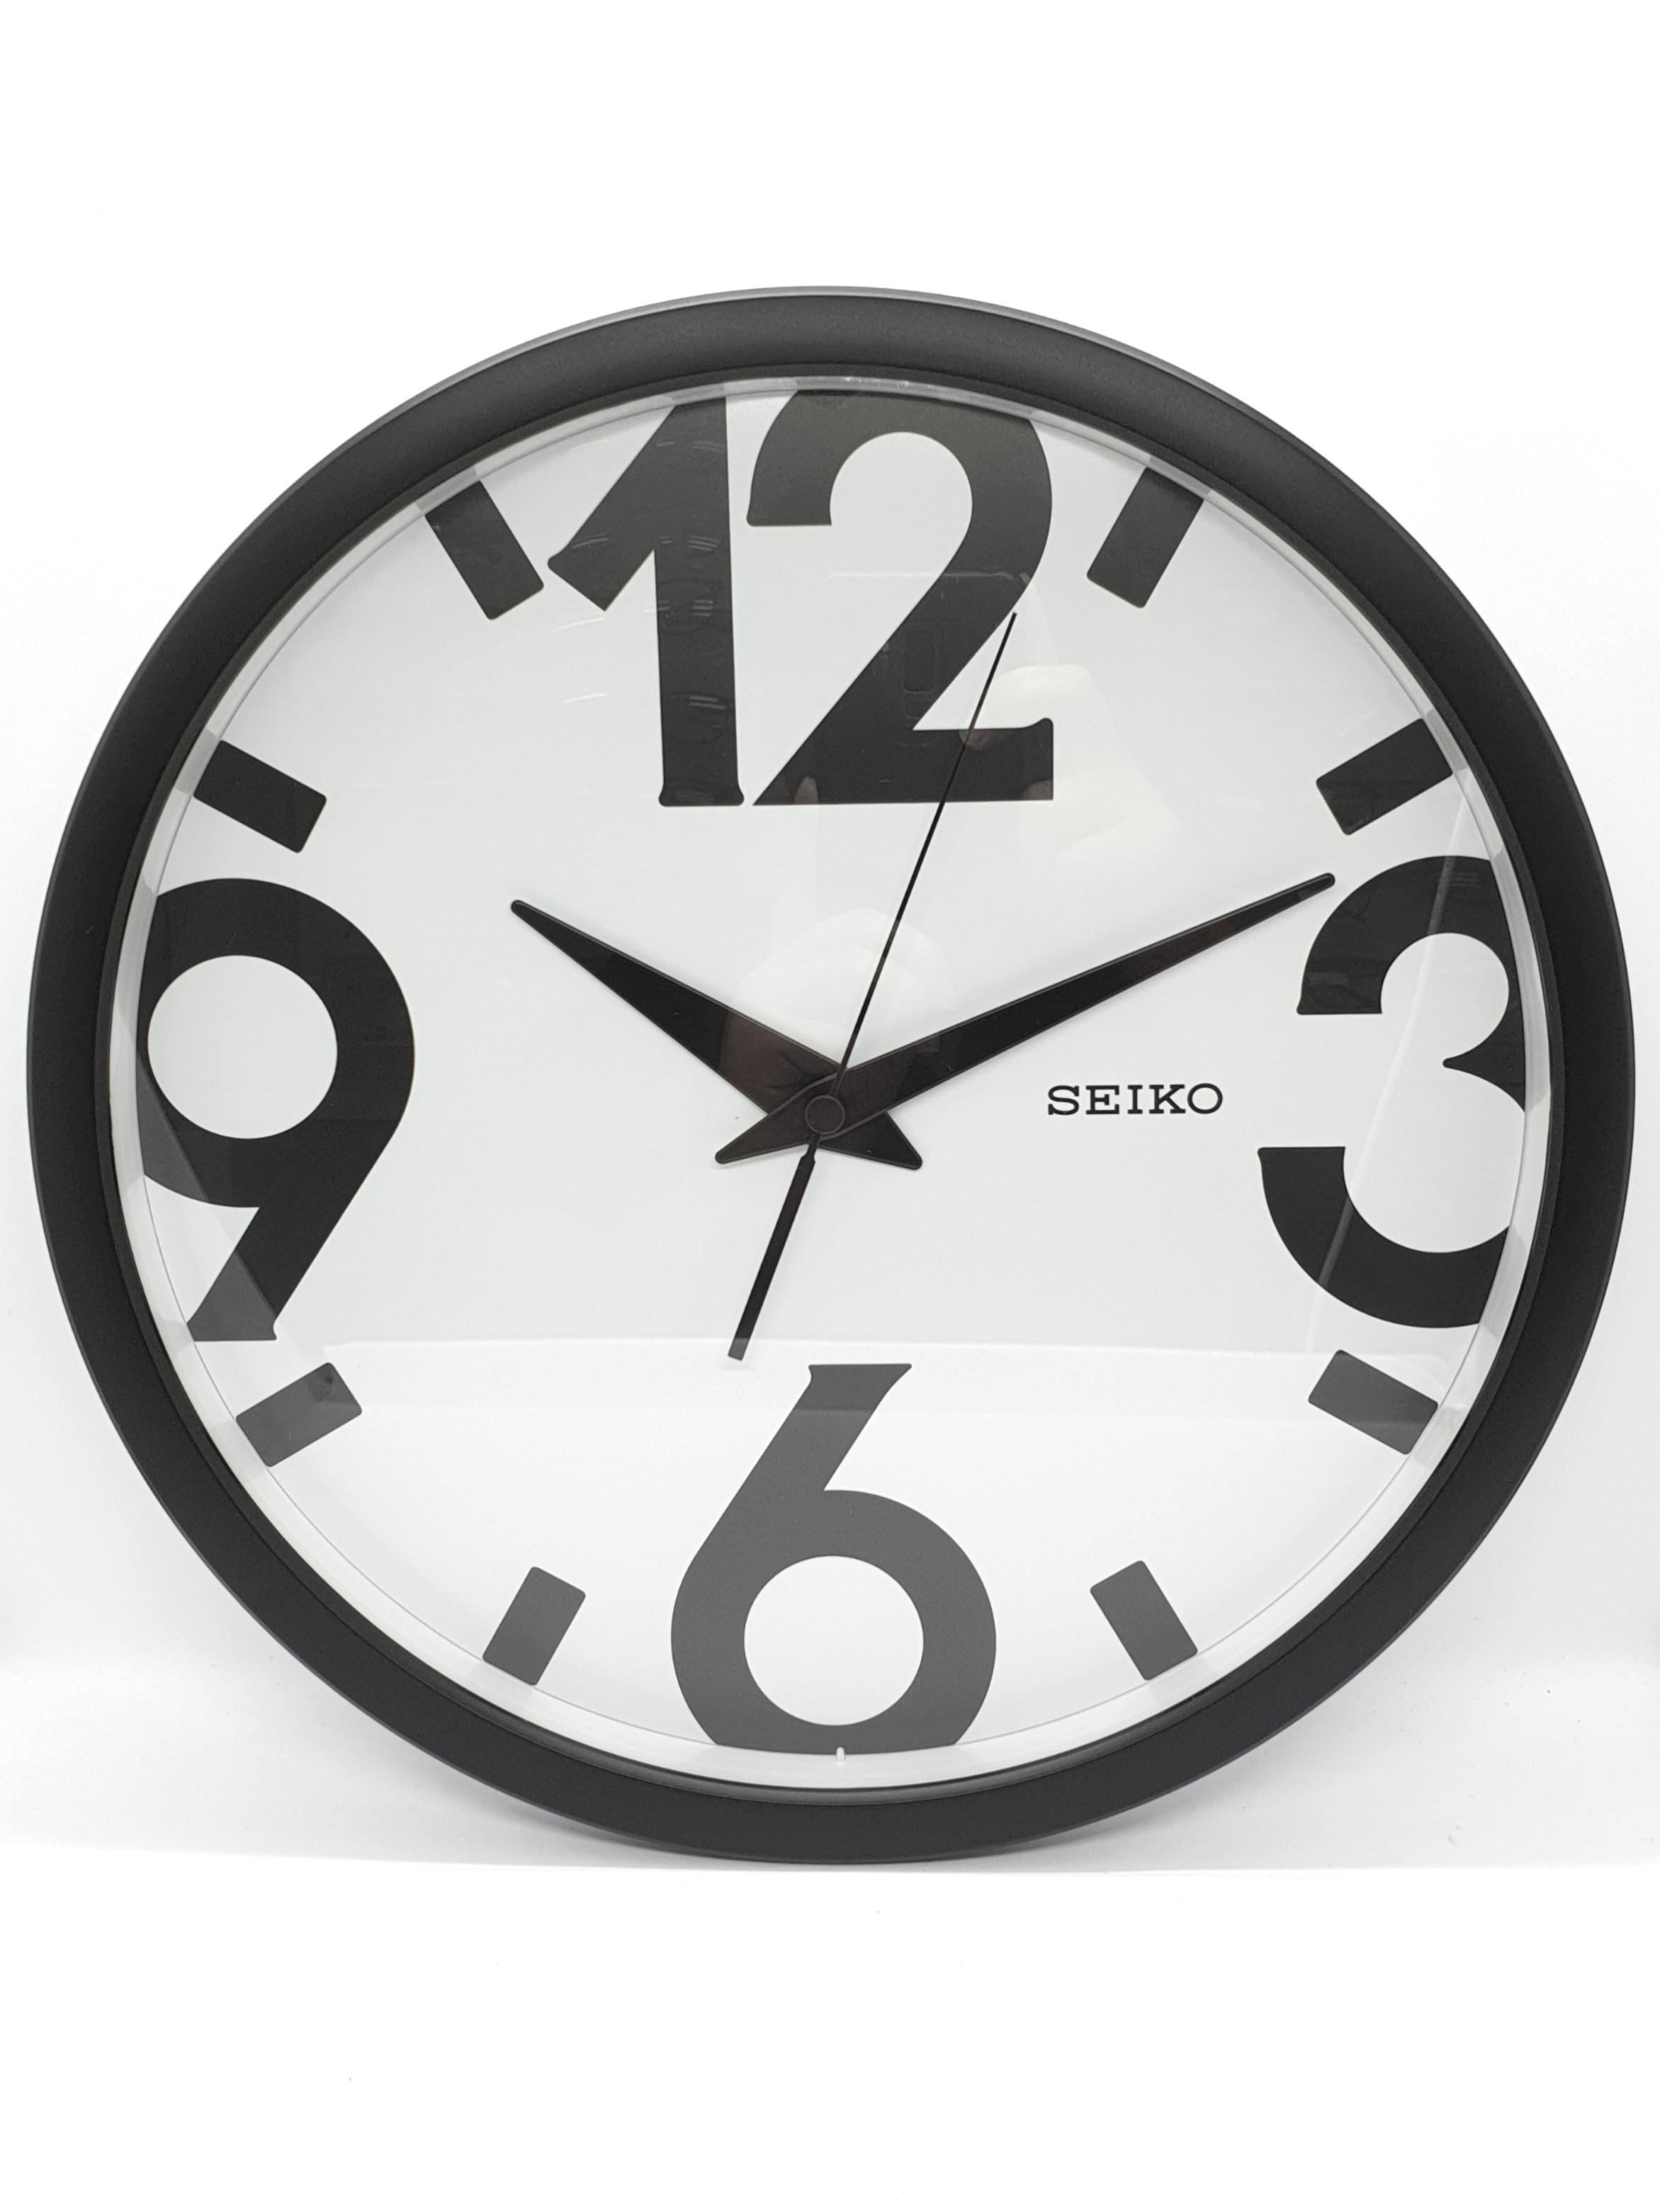 Bn Seiko Contemporary Black And White Wall Clock Furniture Home Decor Others On Carousell